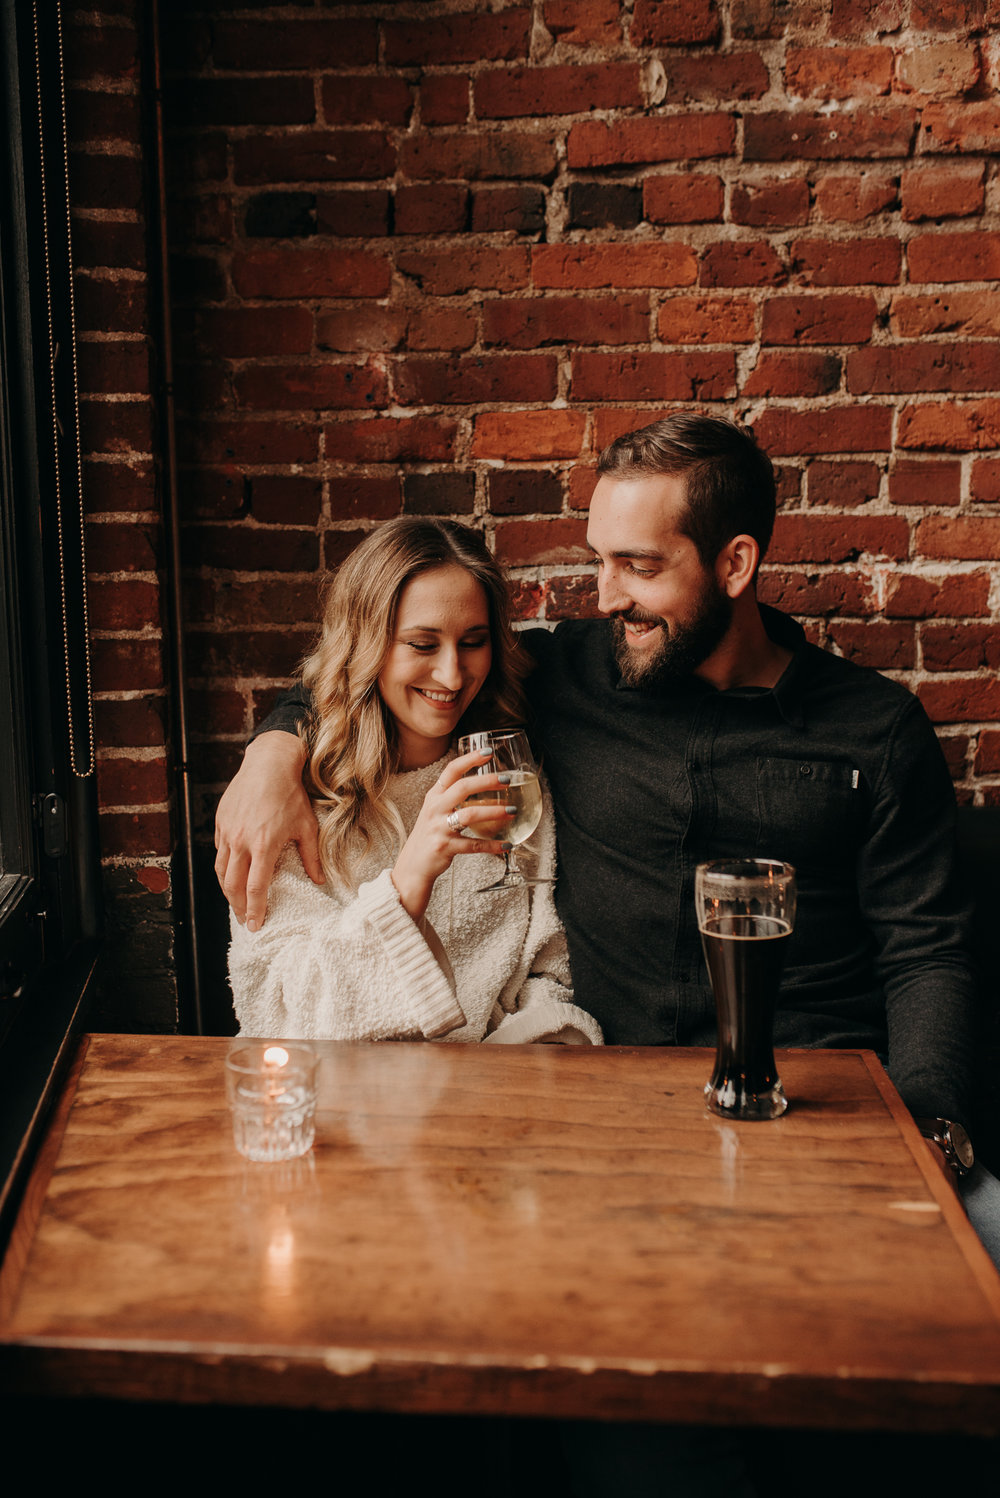 Amanda & Eric Gastown Vancouver Engagement Session - Laura Olson Photography - Sunshine Coast BC Photographer - Vancouver Photographer-1922.jpg